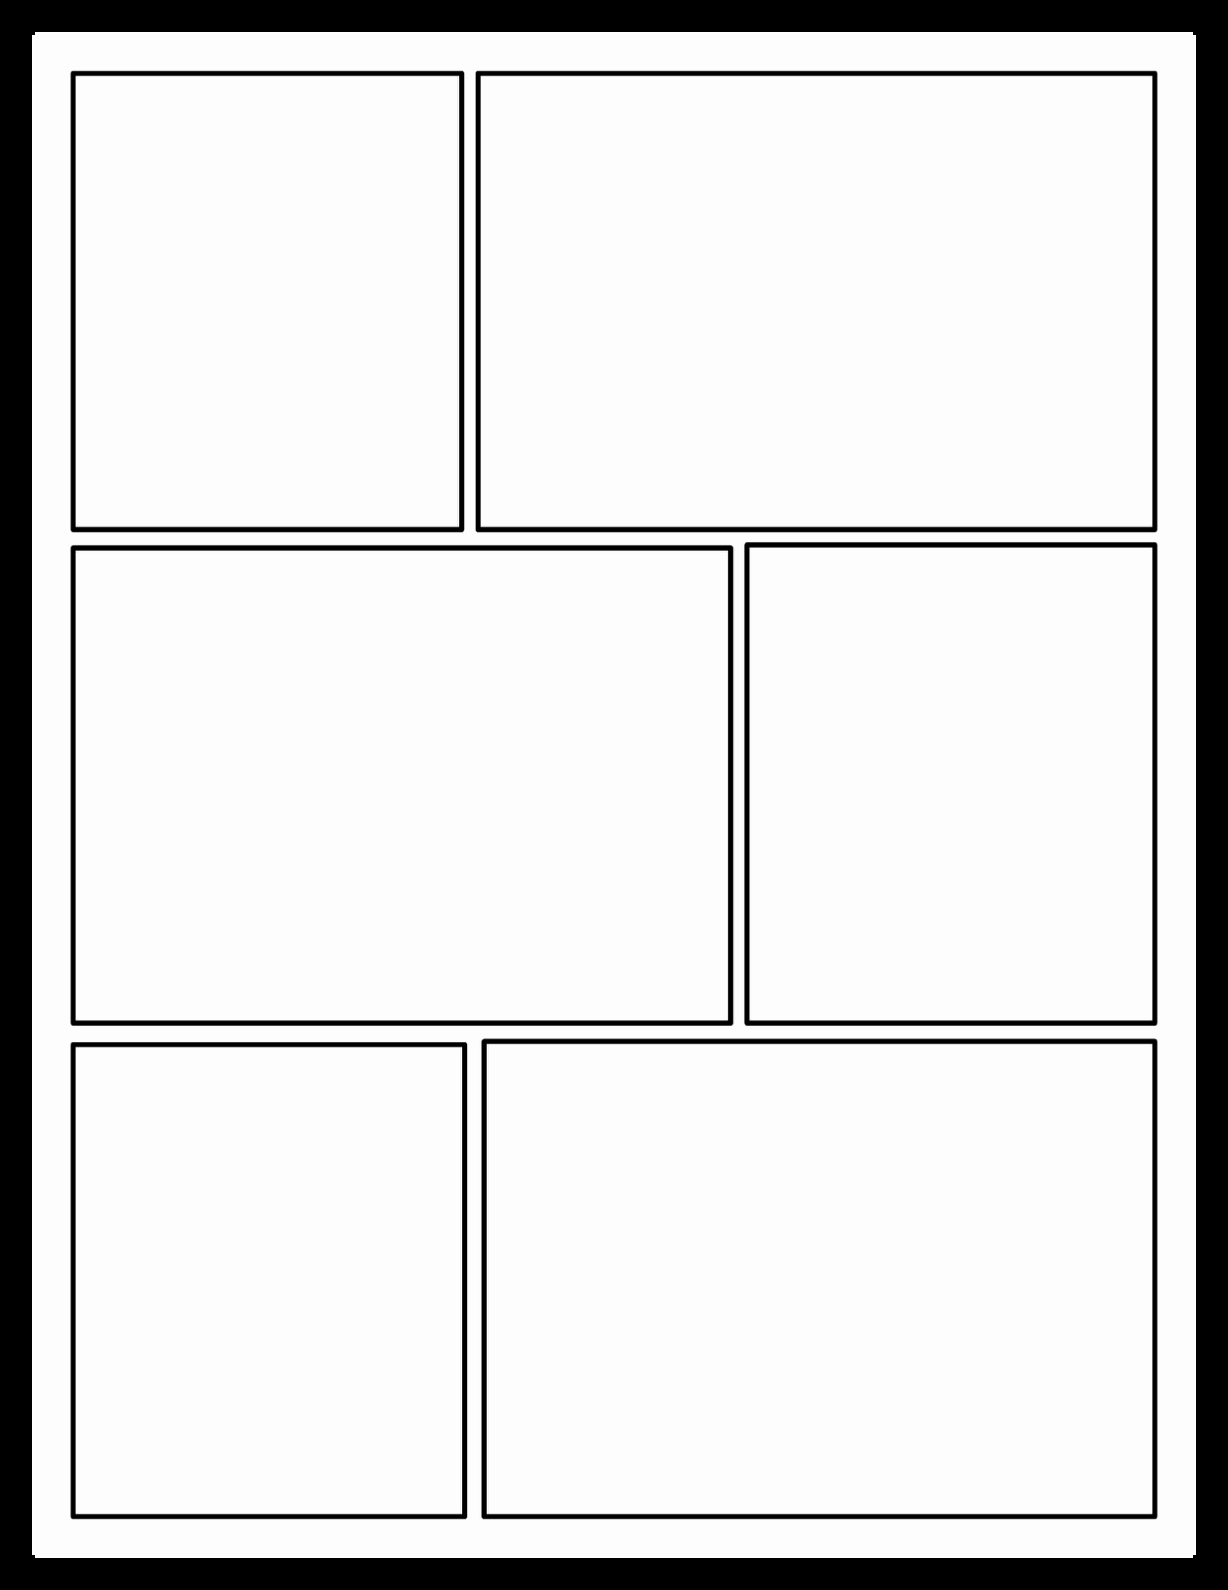 Comic Strip Template Word Lovely Template Reverse Search